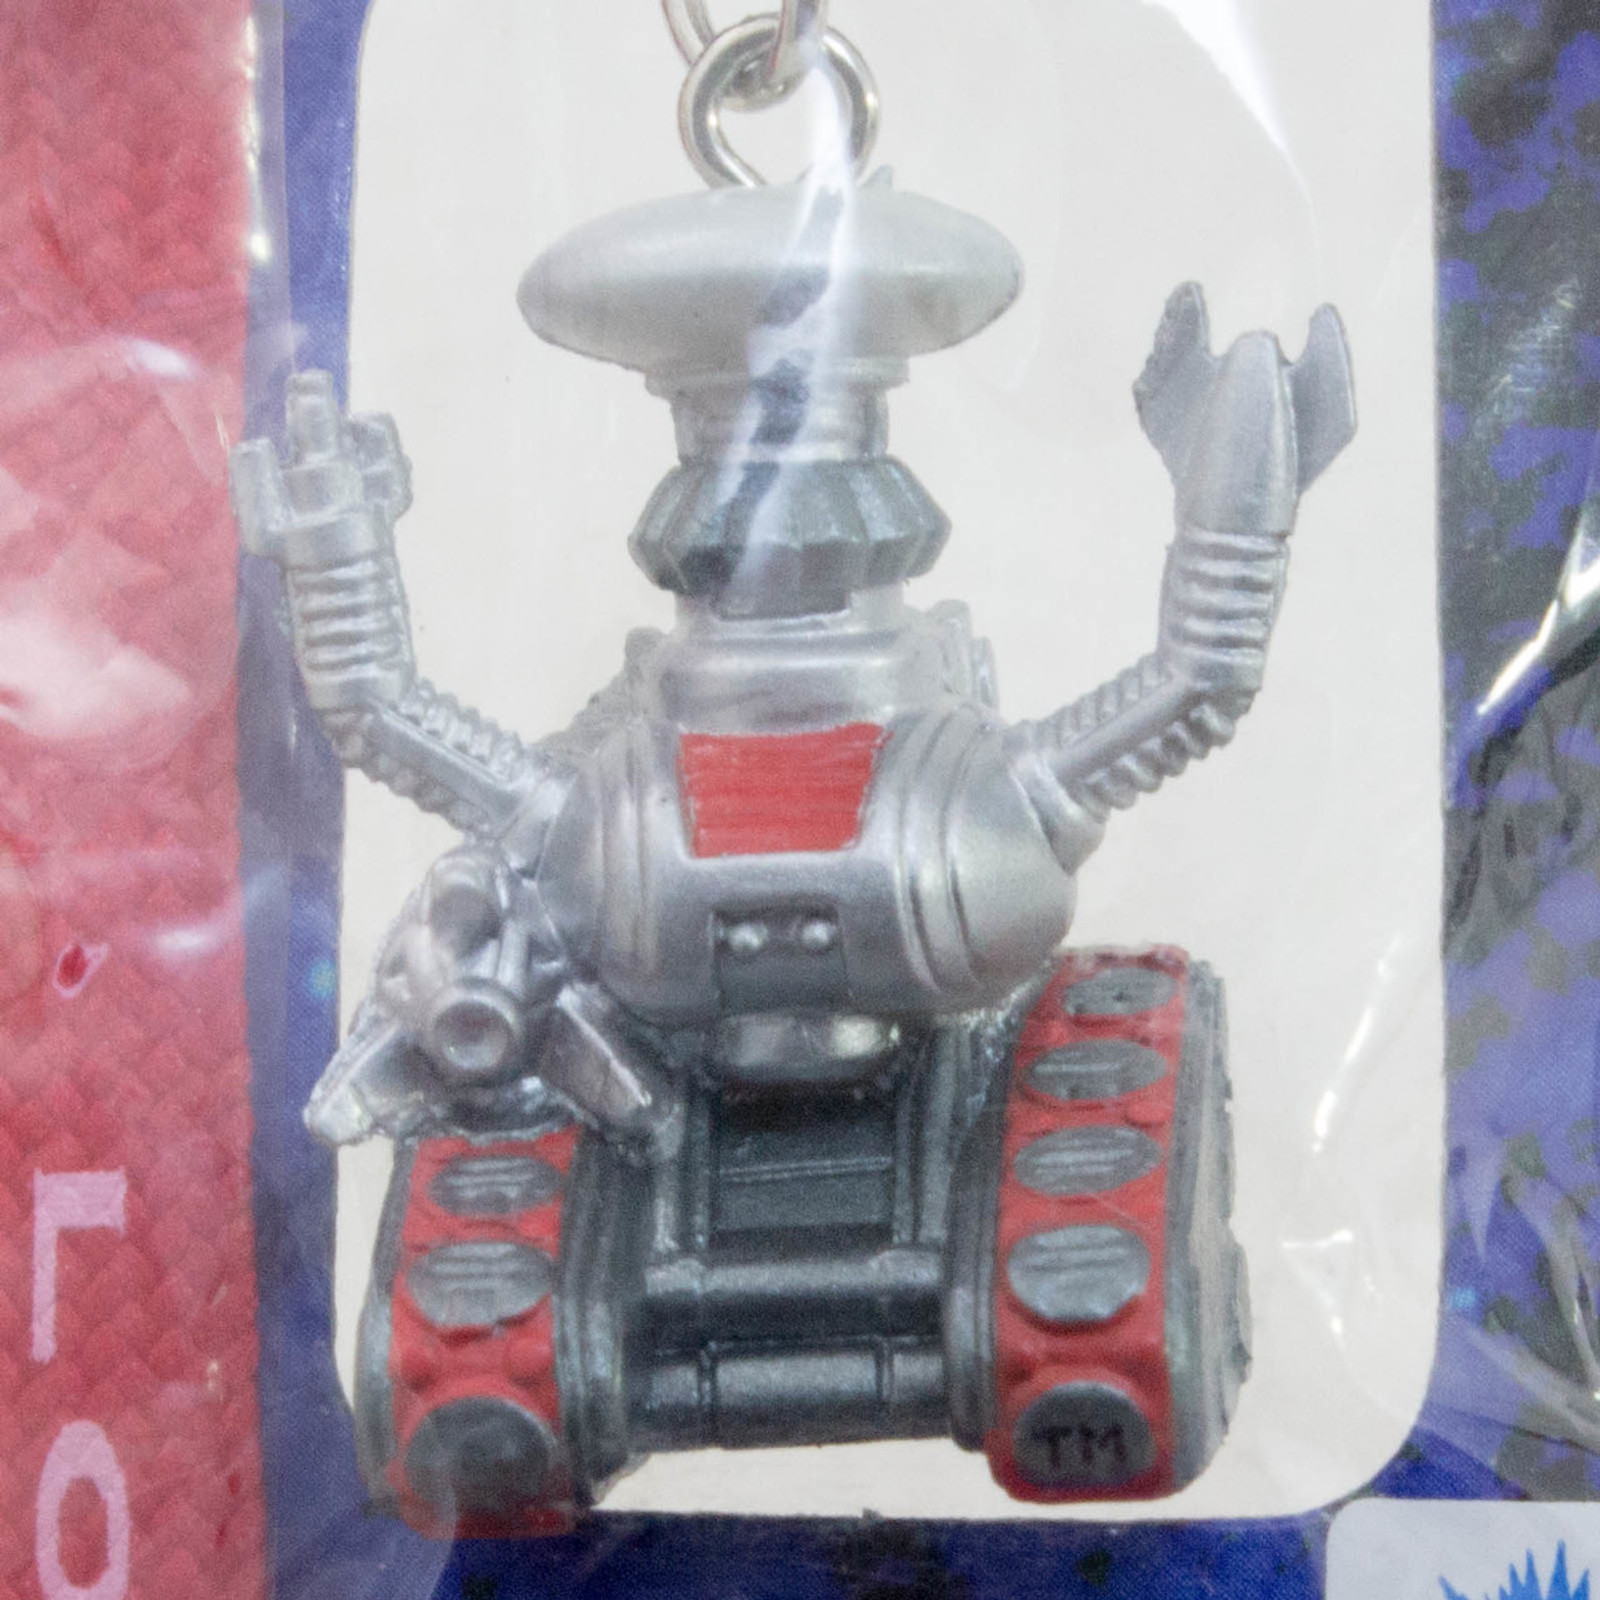 Retro RARE! LOST IN SPACE Silver Robot Figure Strap JAPAN SF MOVIE